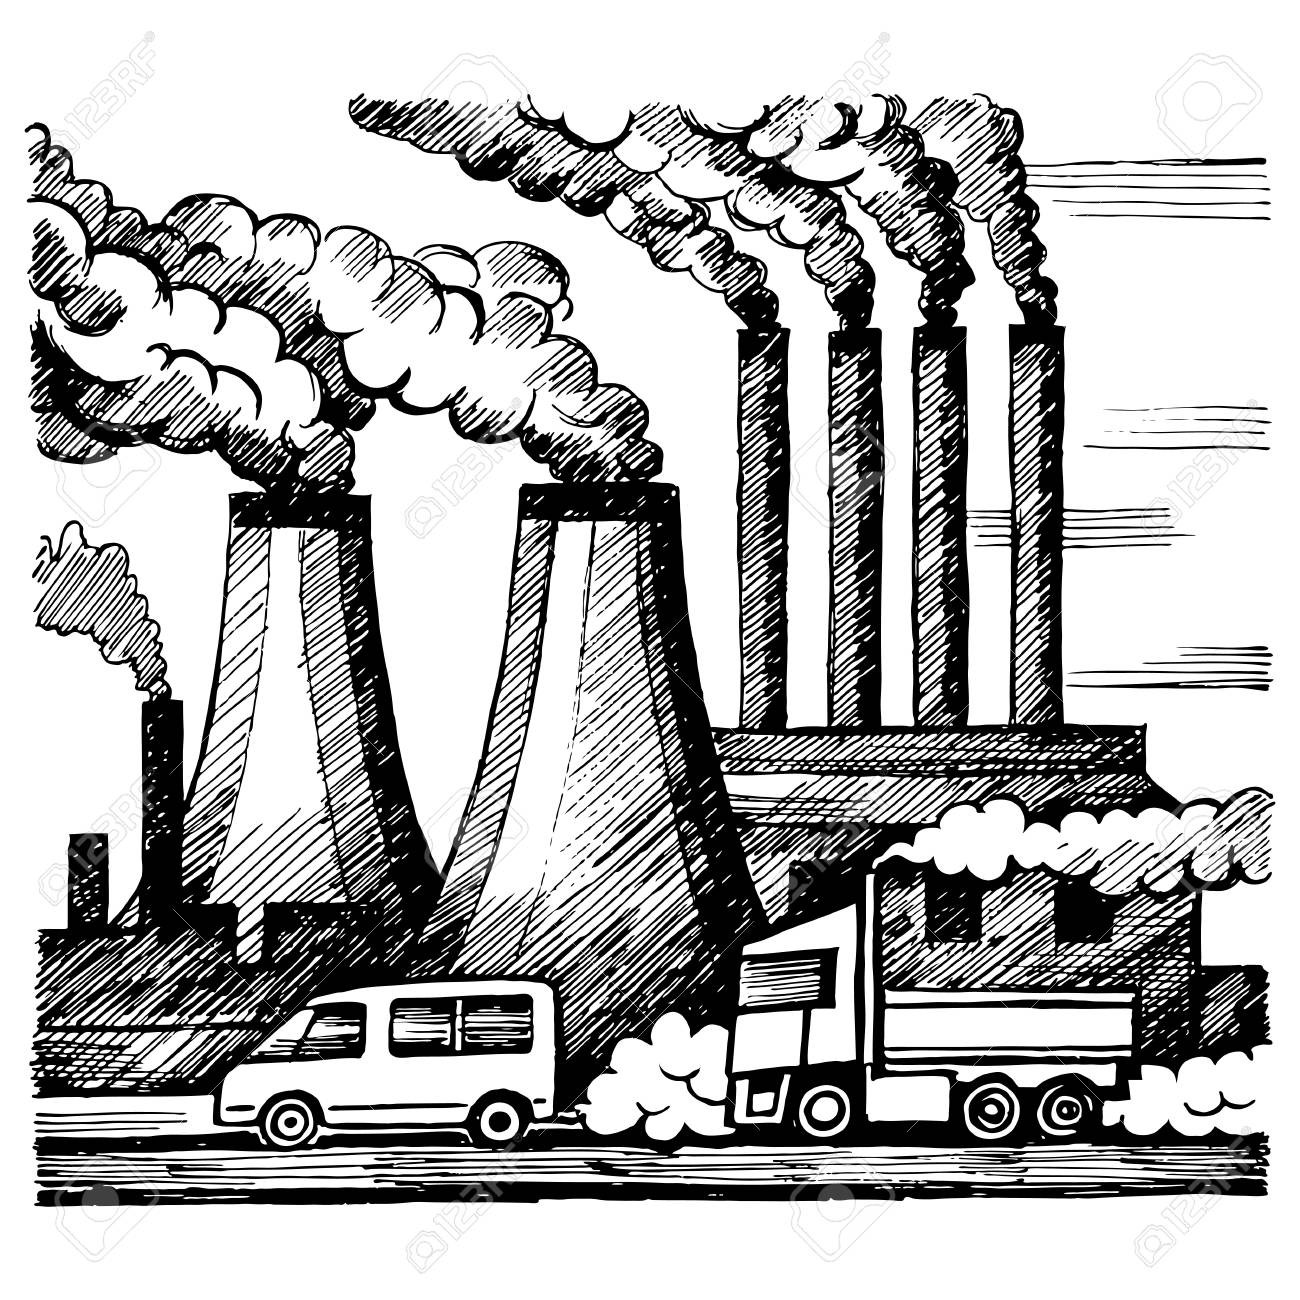 Air ohidul me factory. Pollution clipart drawing graphic stock